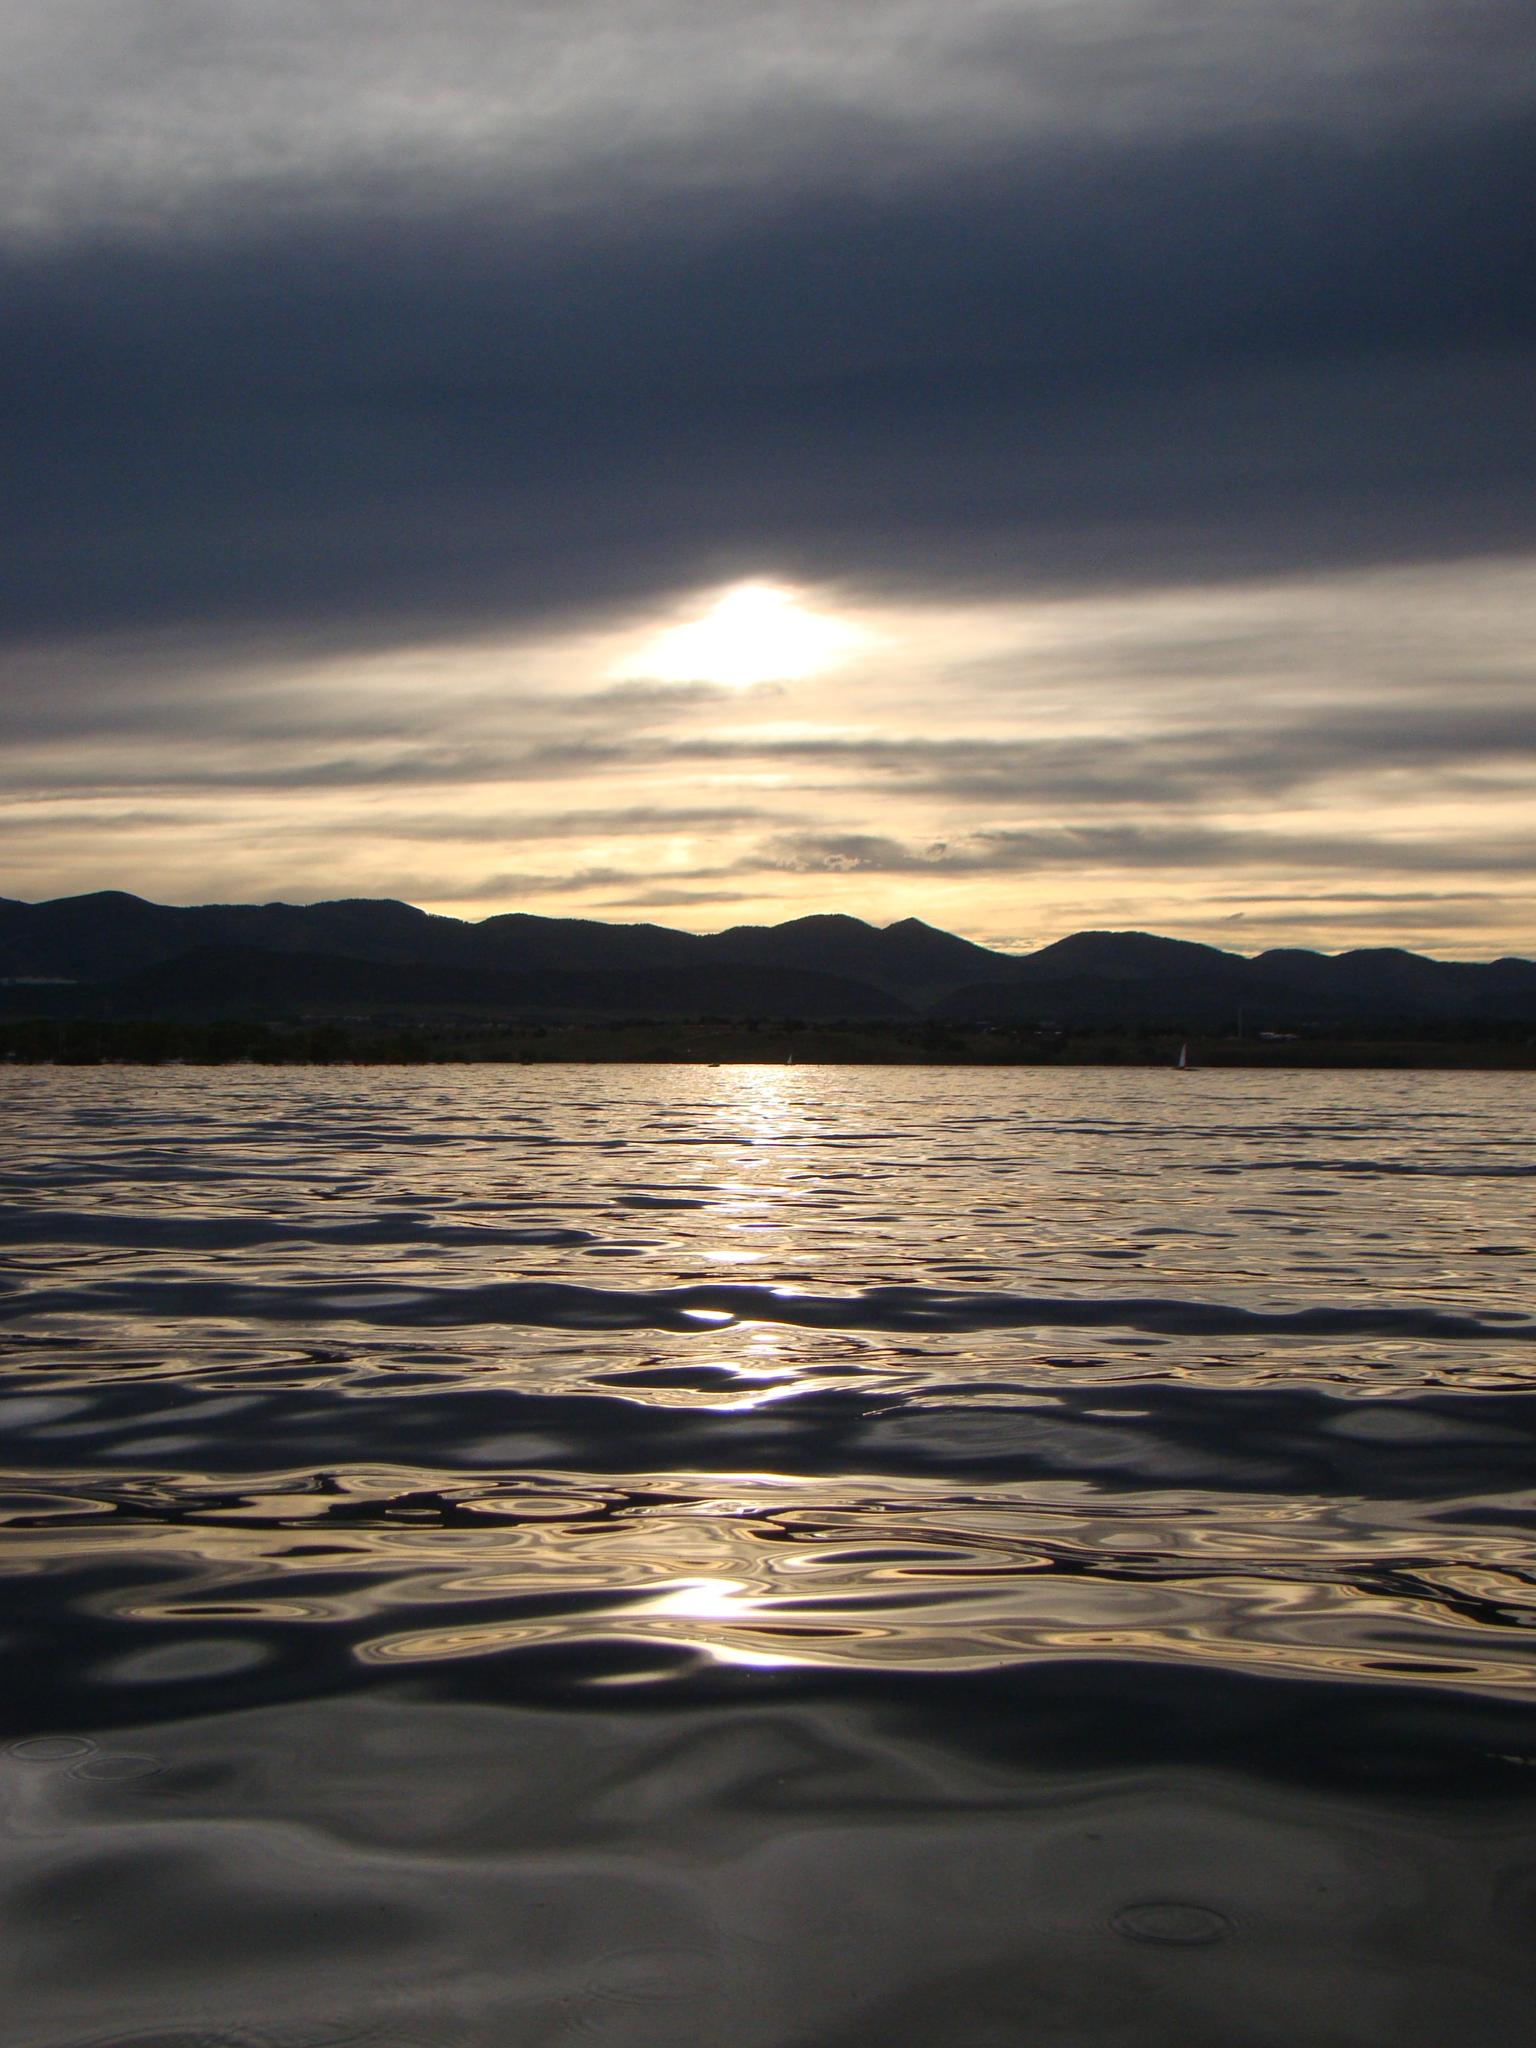 Sunlight on Water by Catherine Carver